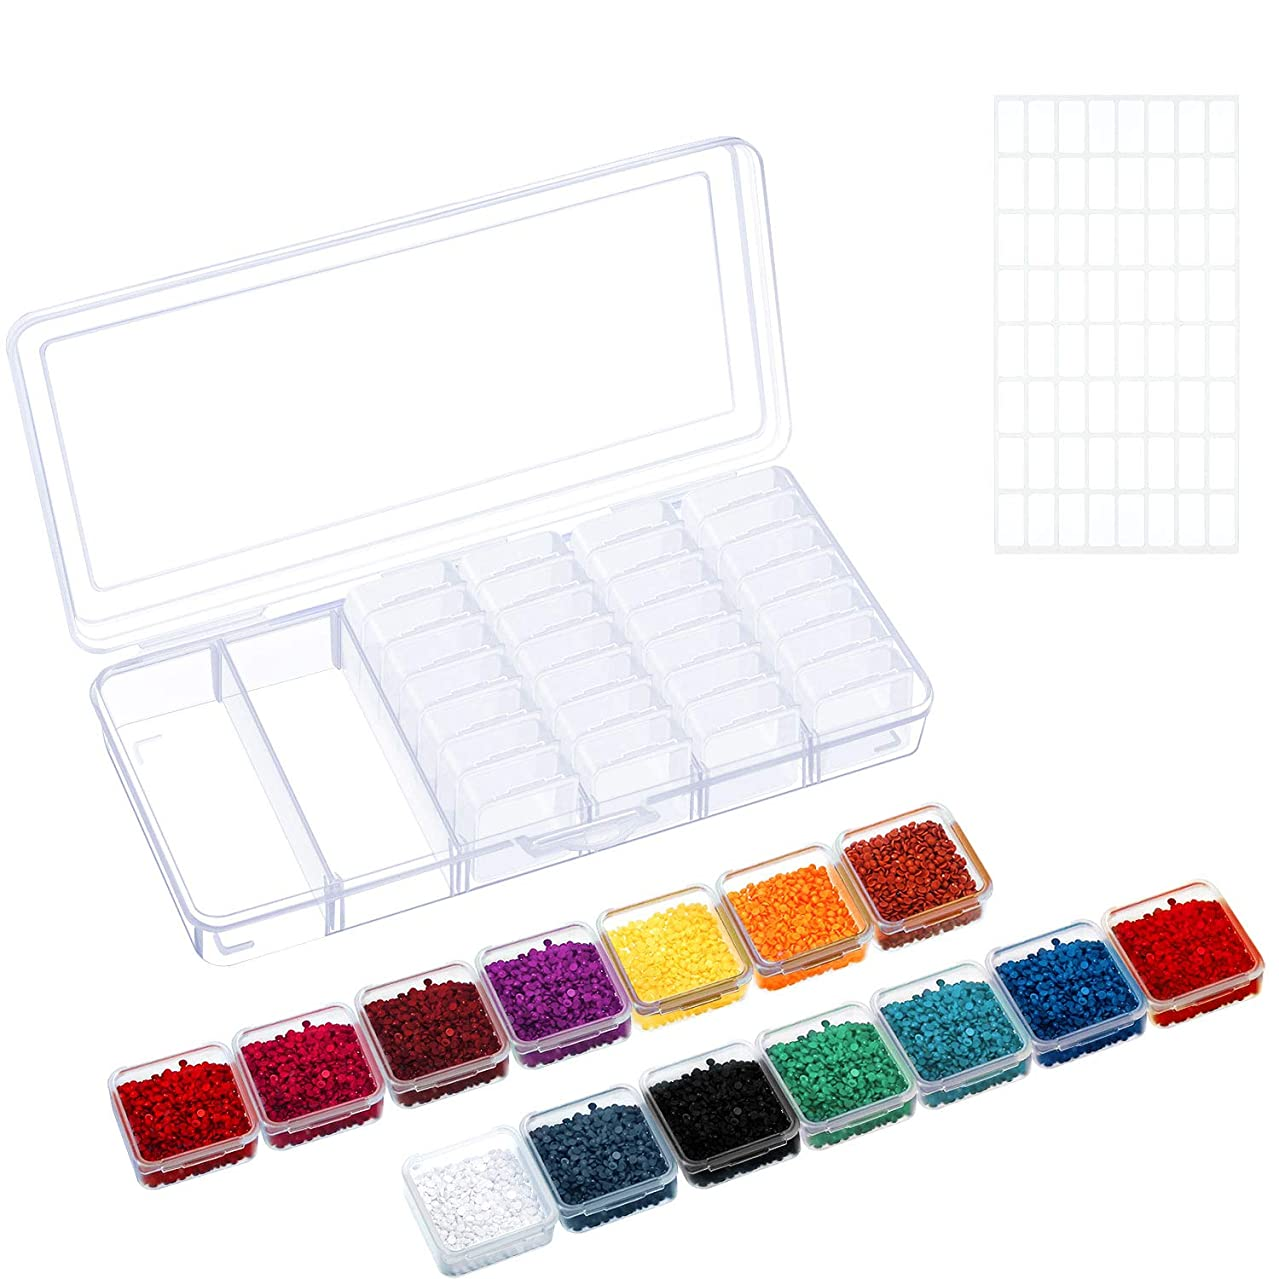 Diamond Painting Storage Box 42 Grids Clear Embroidery Accessory Container 5D Diamond Painting Boxes with 64 Pieces Labels for Handmade Supplies